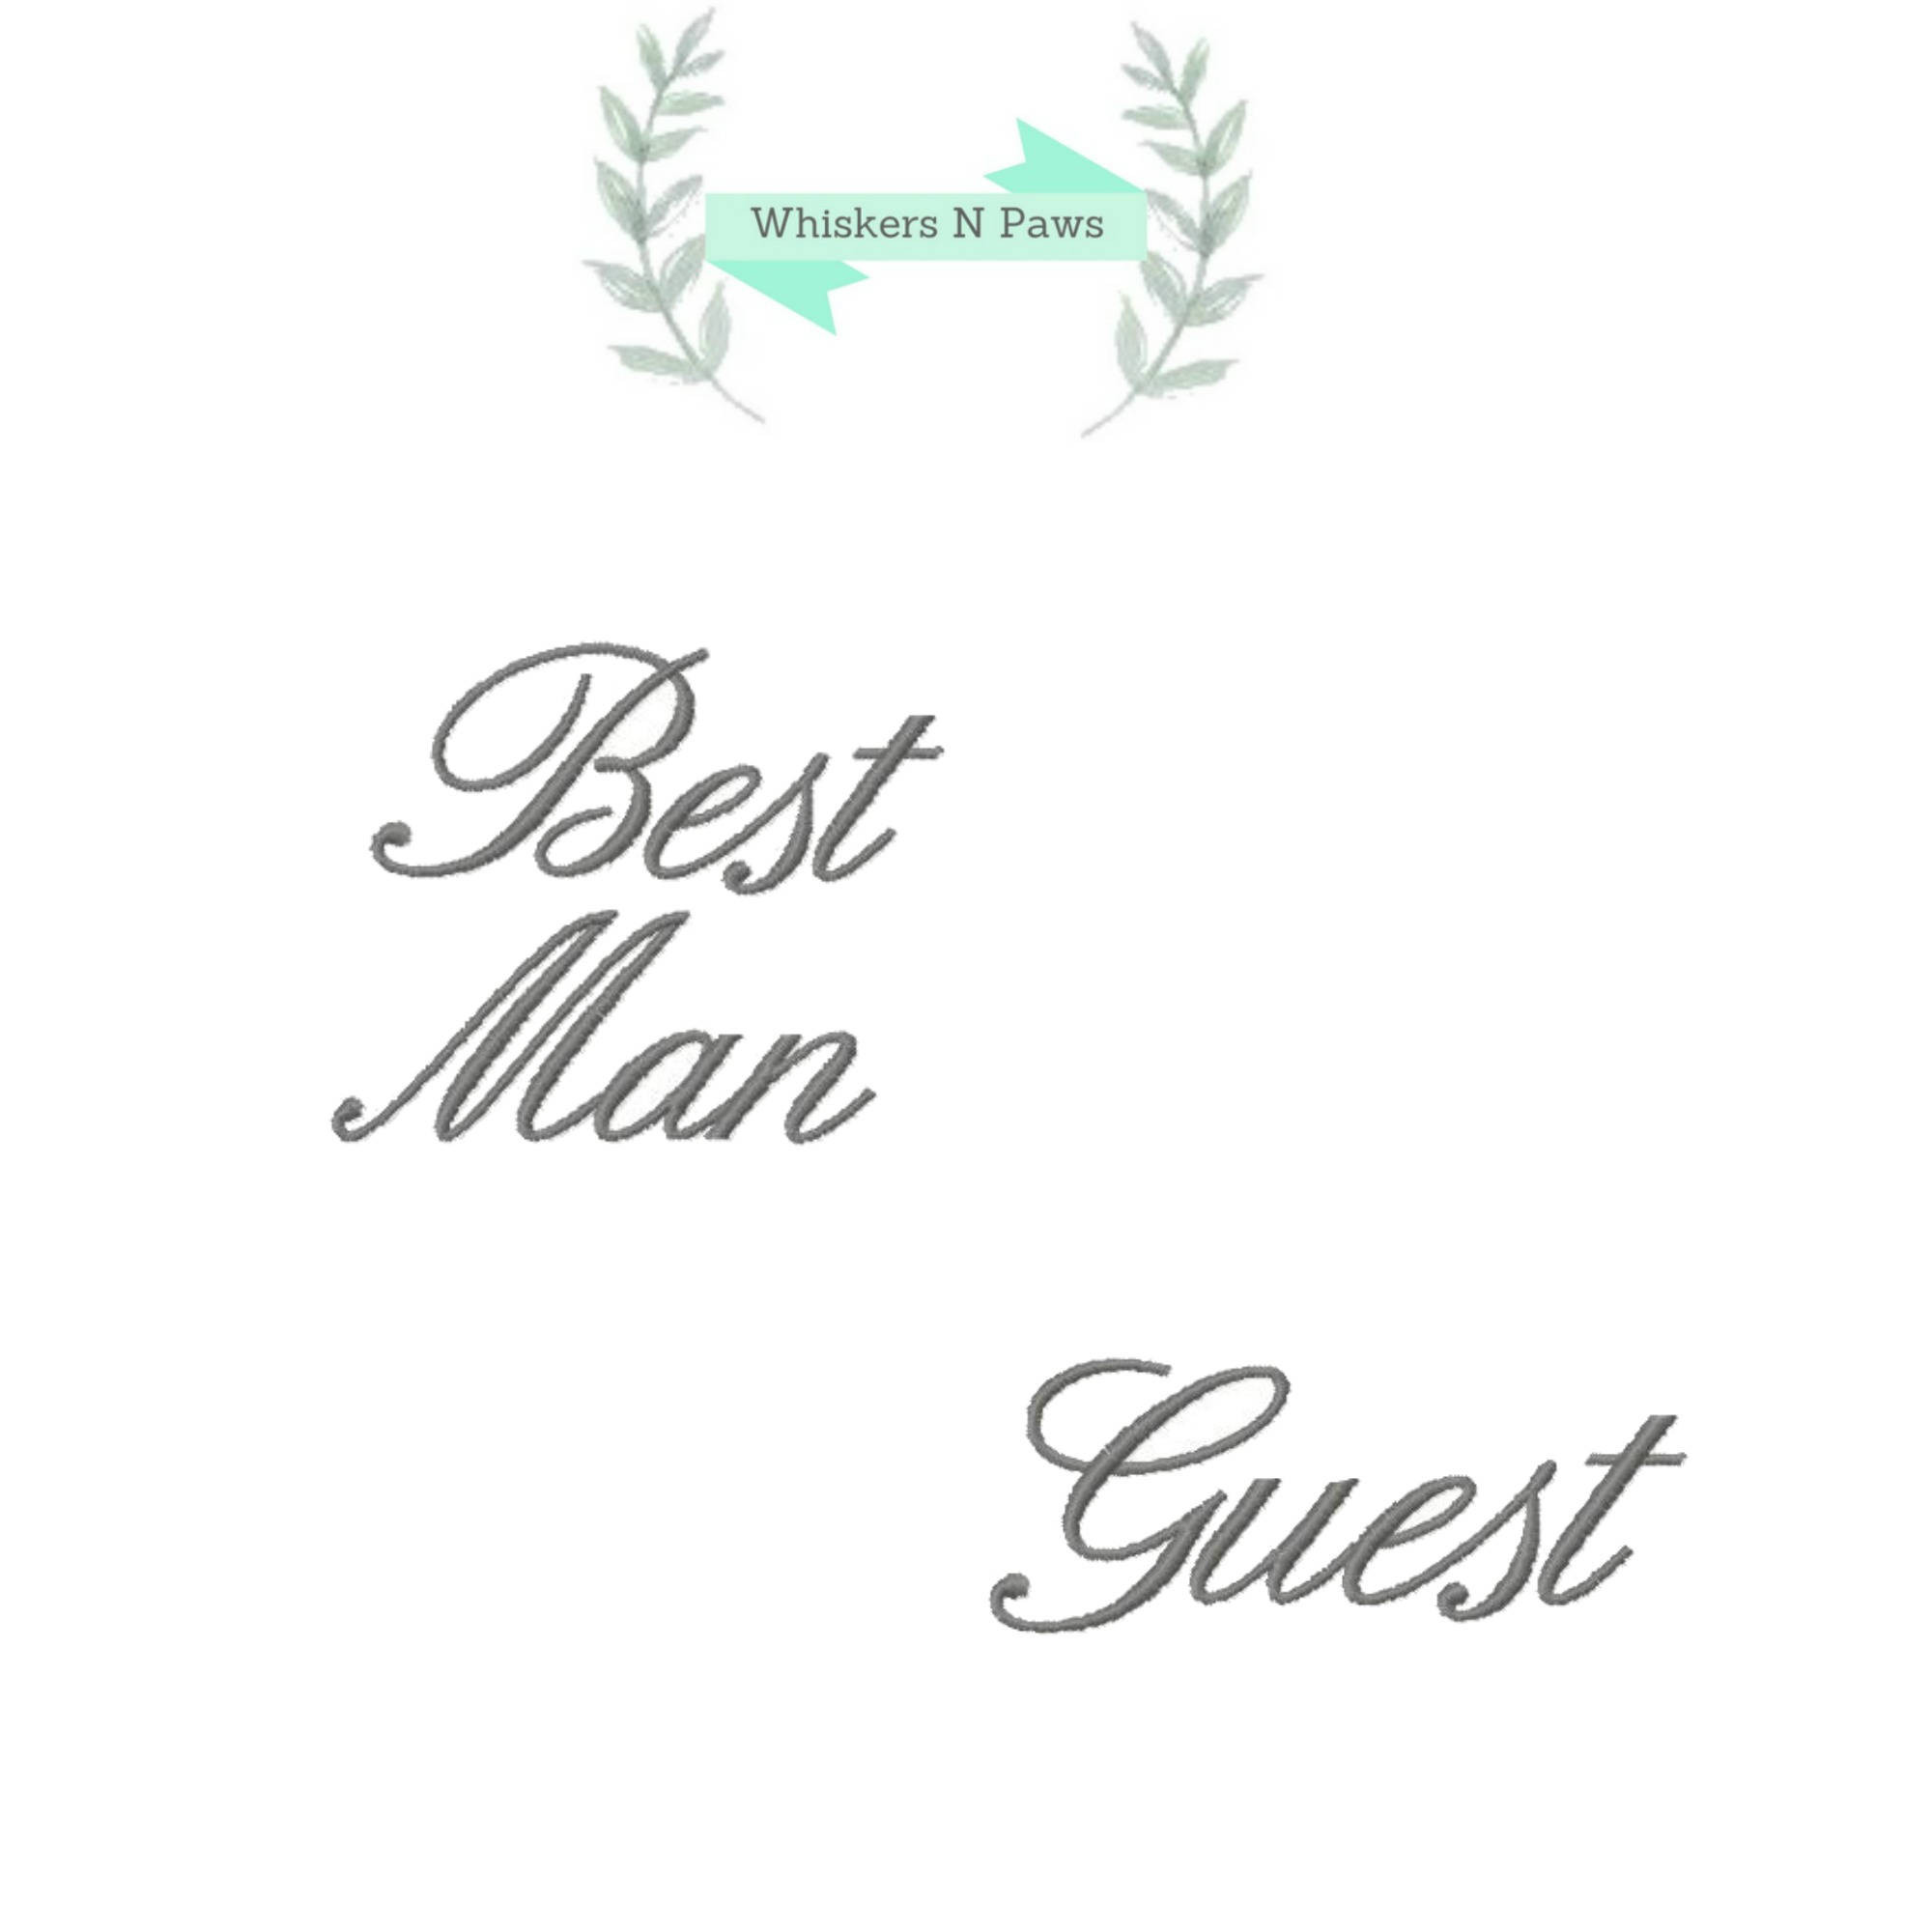 Set of 2 Wedding Bridal Party Embroidery Designs Best Man